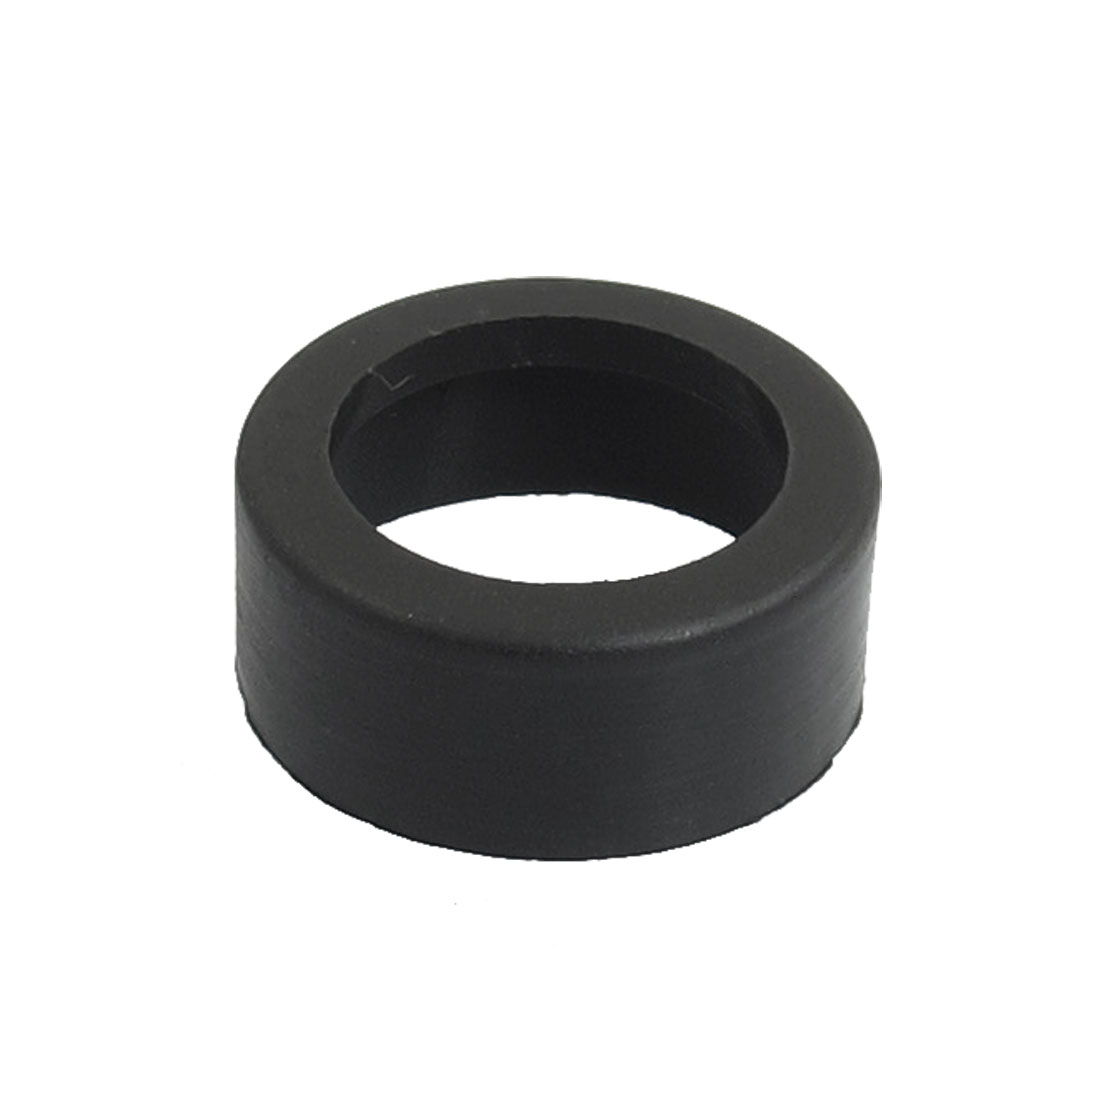 Rubber Repair Repalcement Bearing Cover for Bosch GWS20-180 Angle Grinder